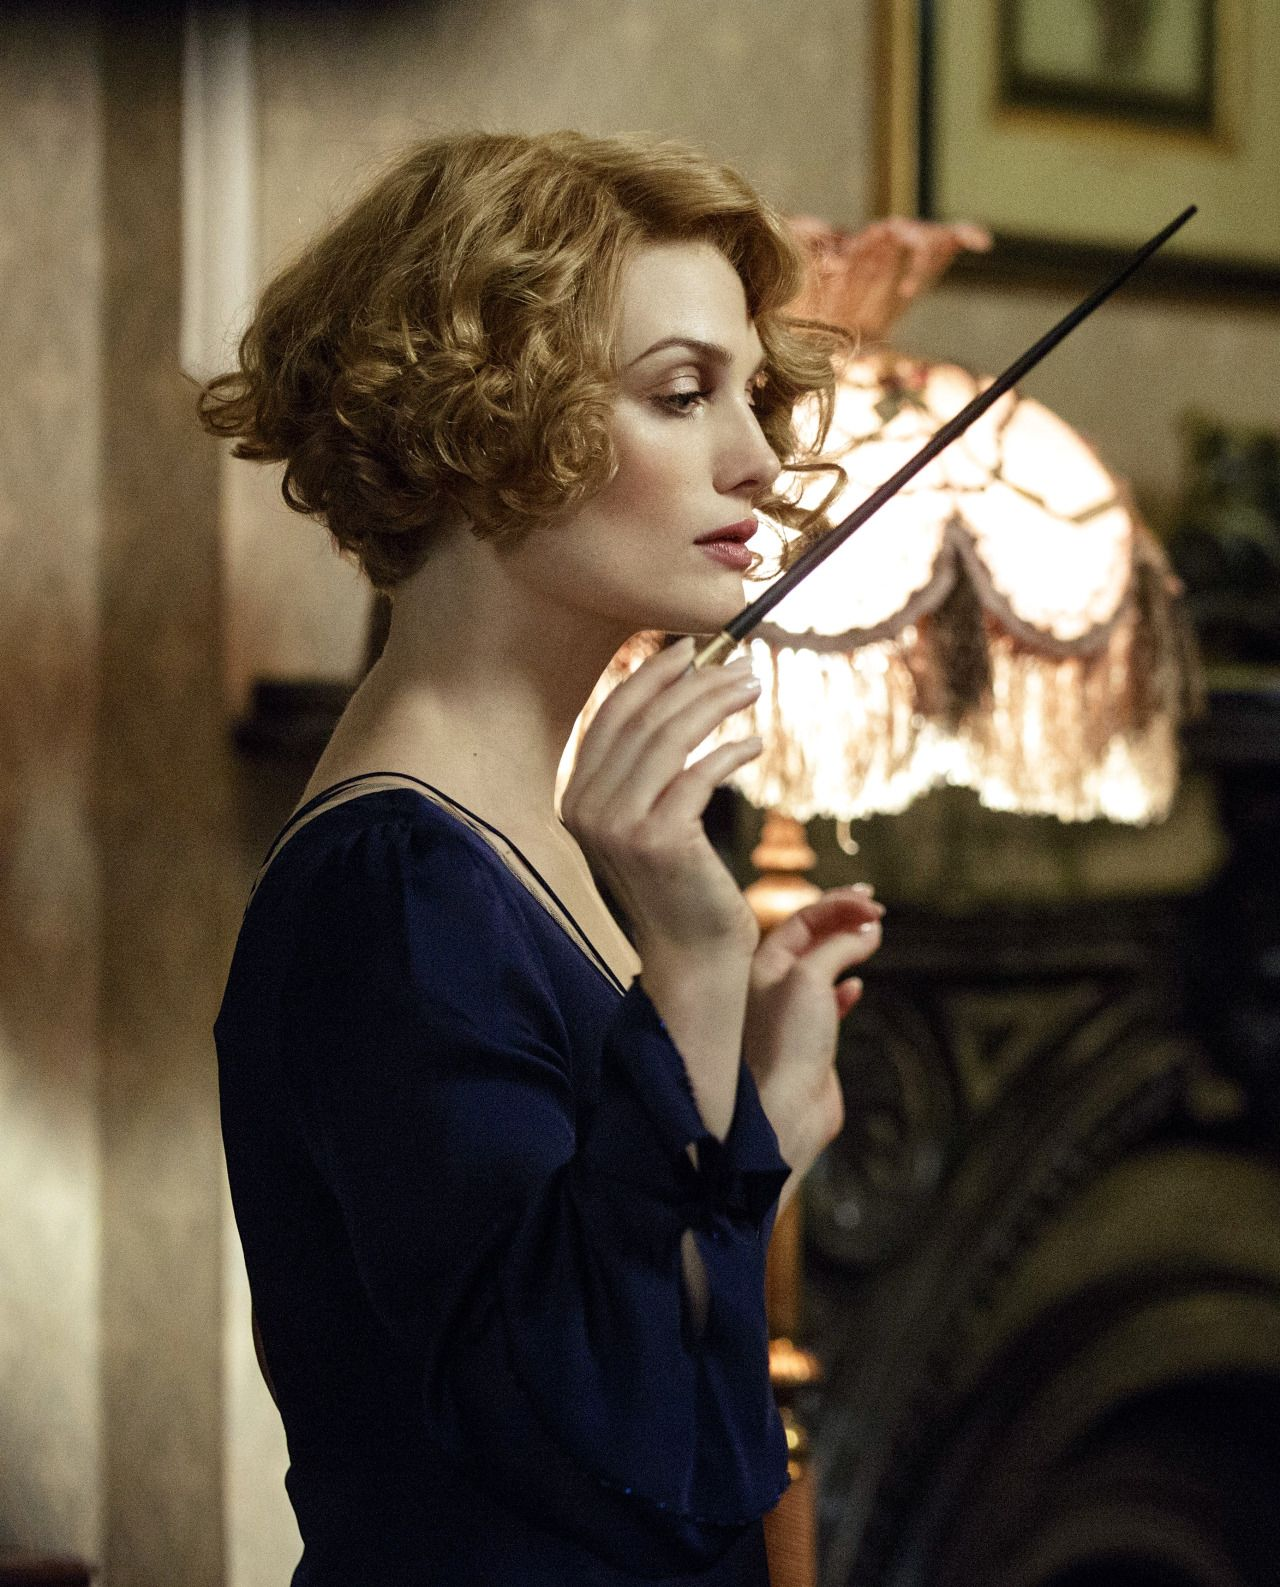 "the-garden-of-delights: ""Alison Sudol as Queenie Goldstein in ..."